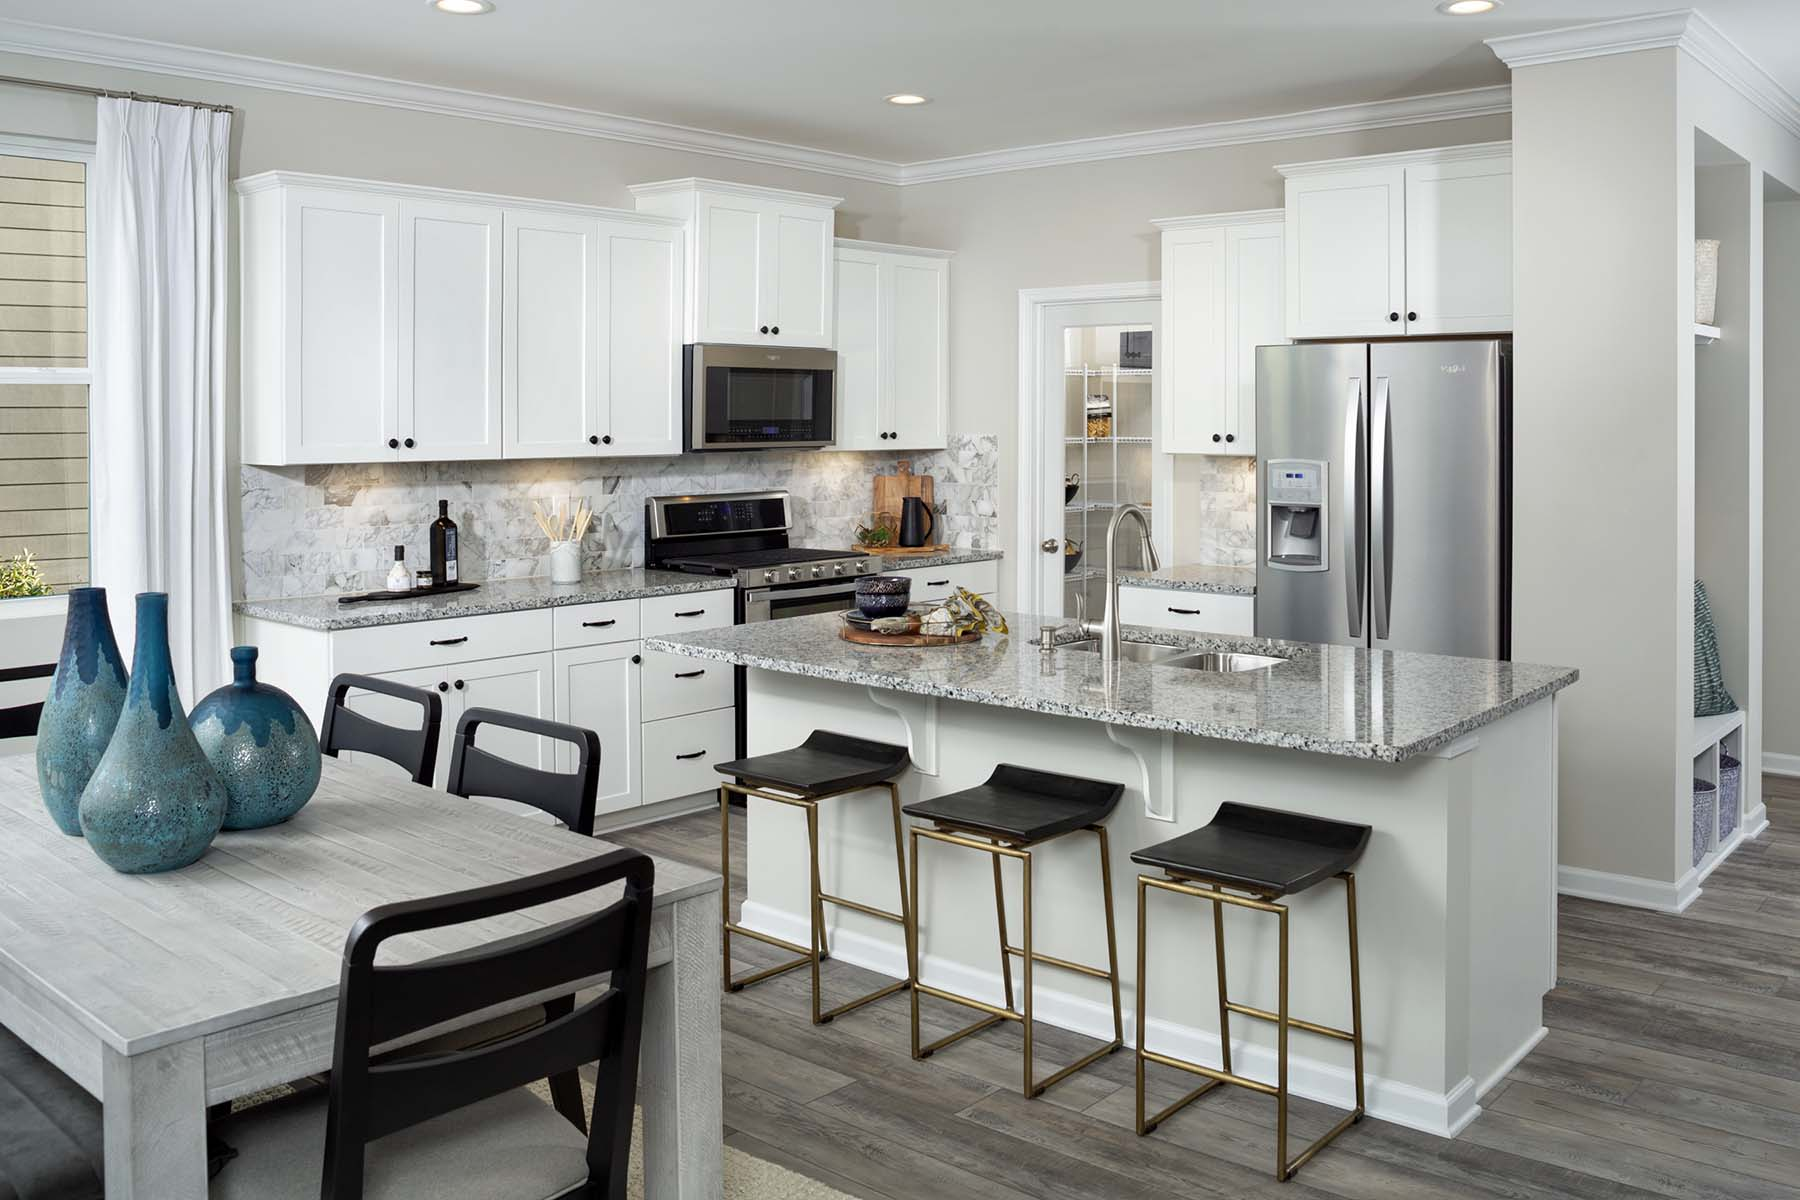 Carsen Glen Kitchen in Charlotte North Carolina by Mattamy Homes